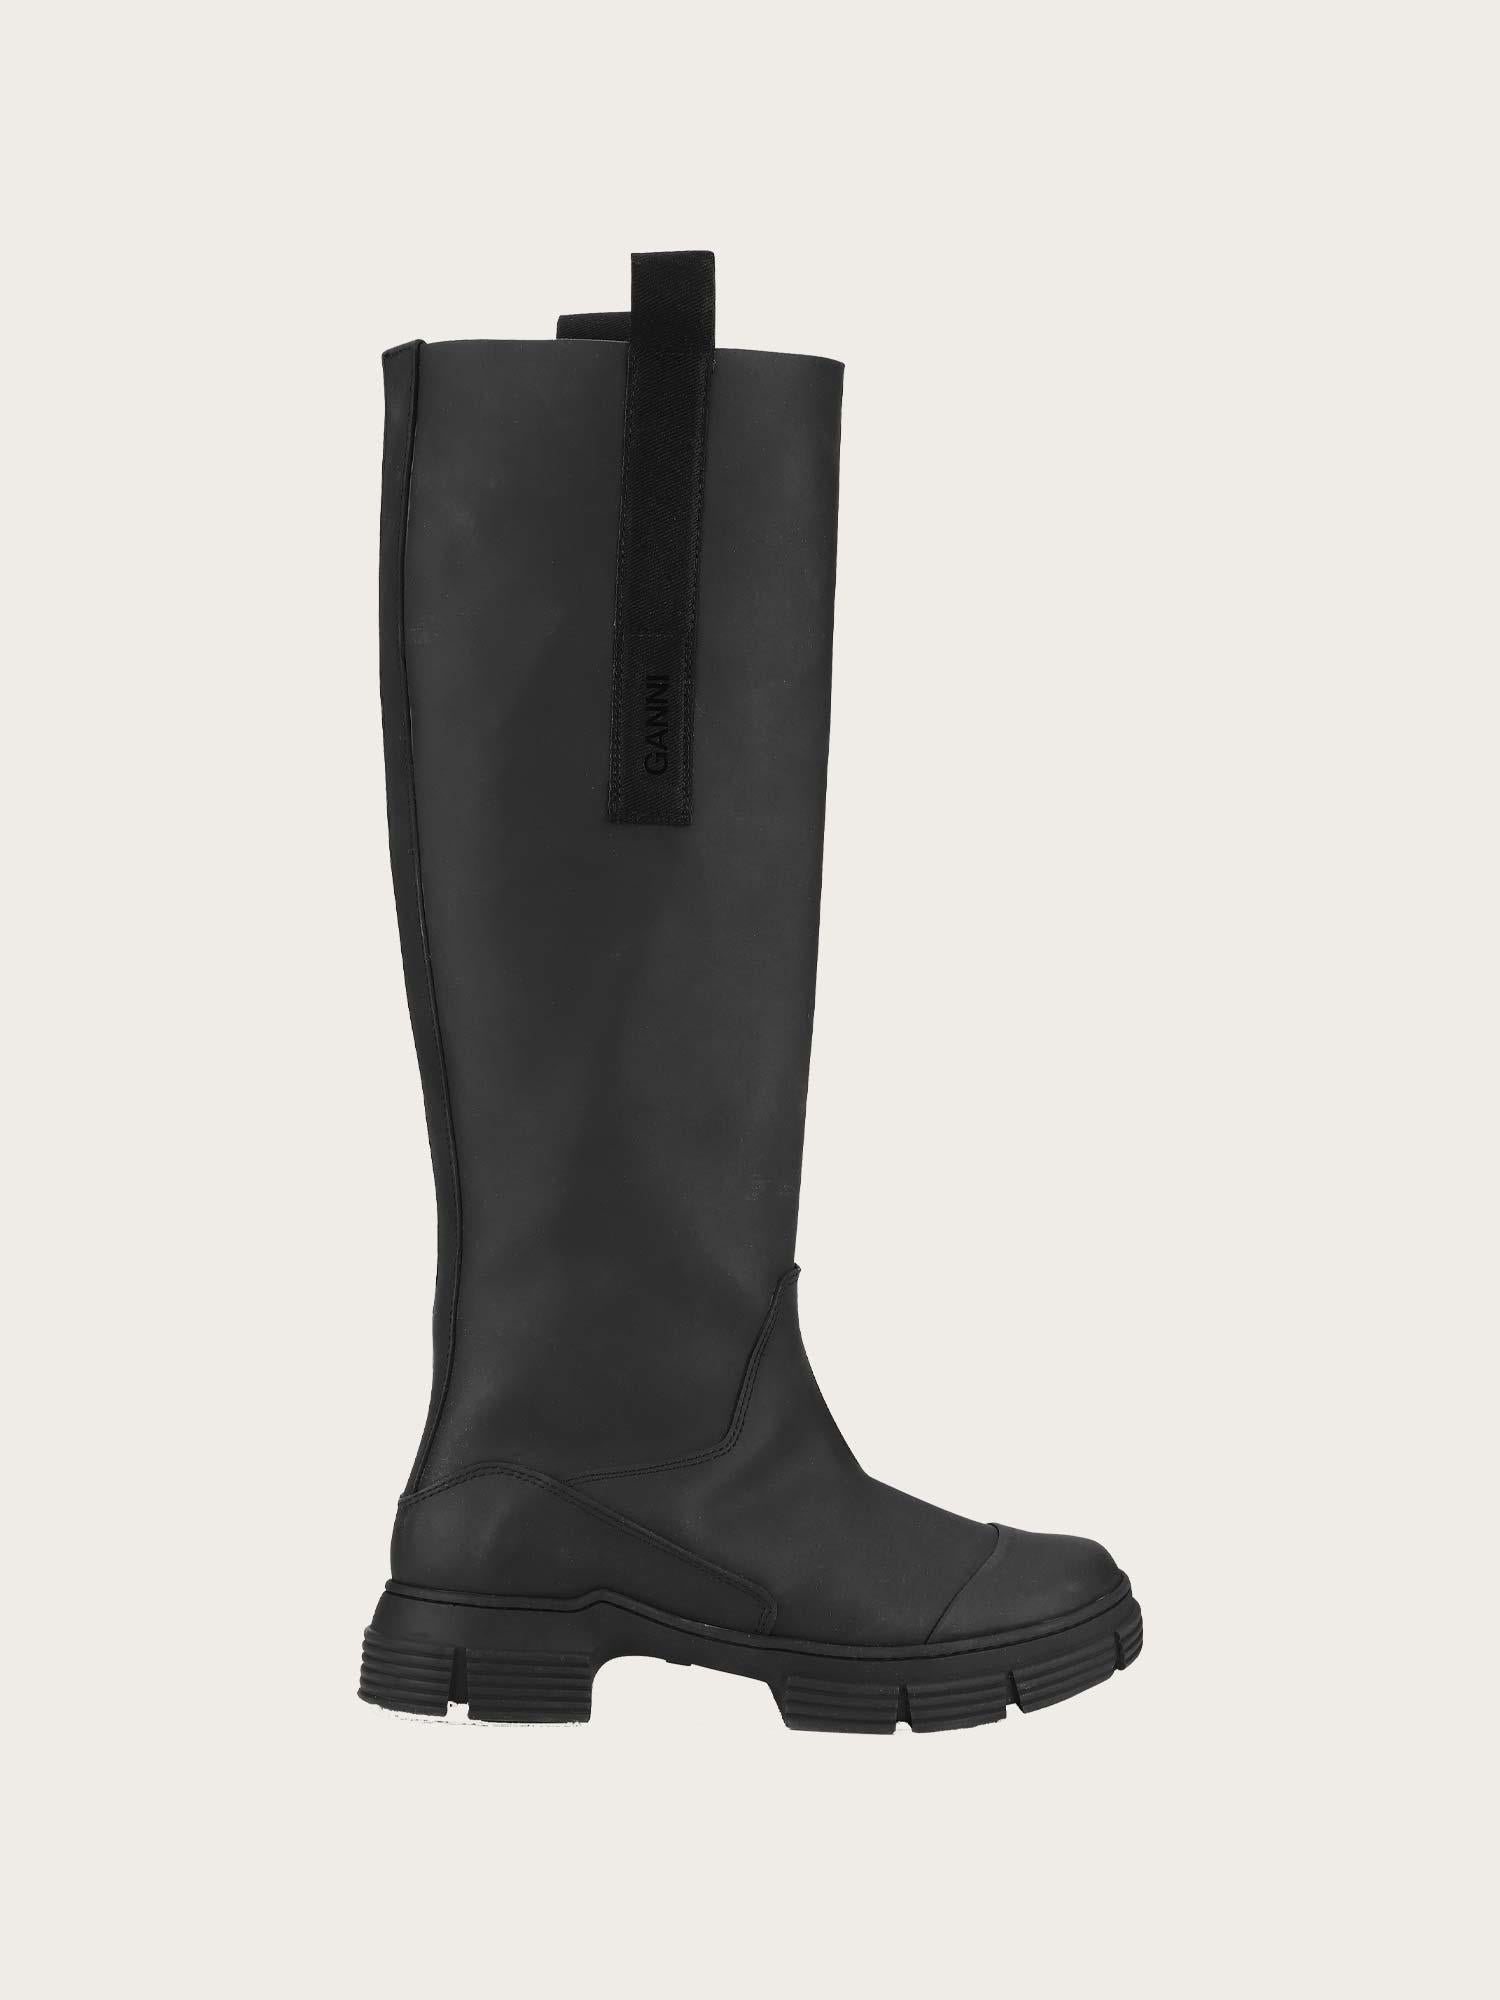 S1222 Recycled Rubber Country Boot Black